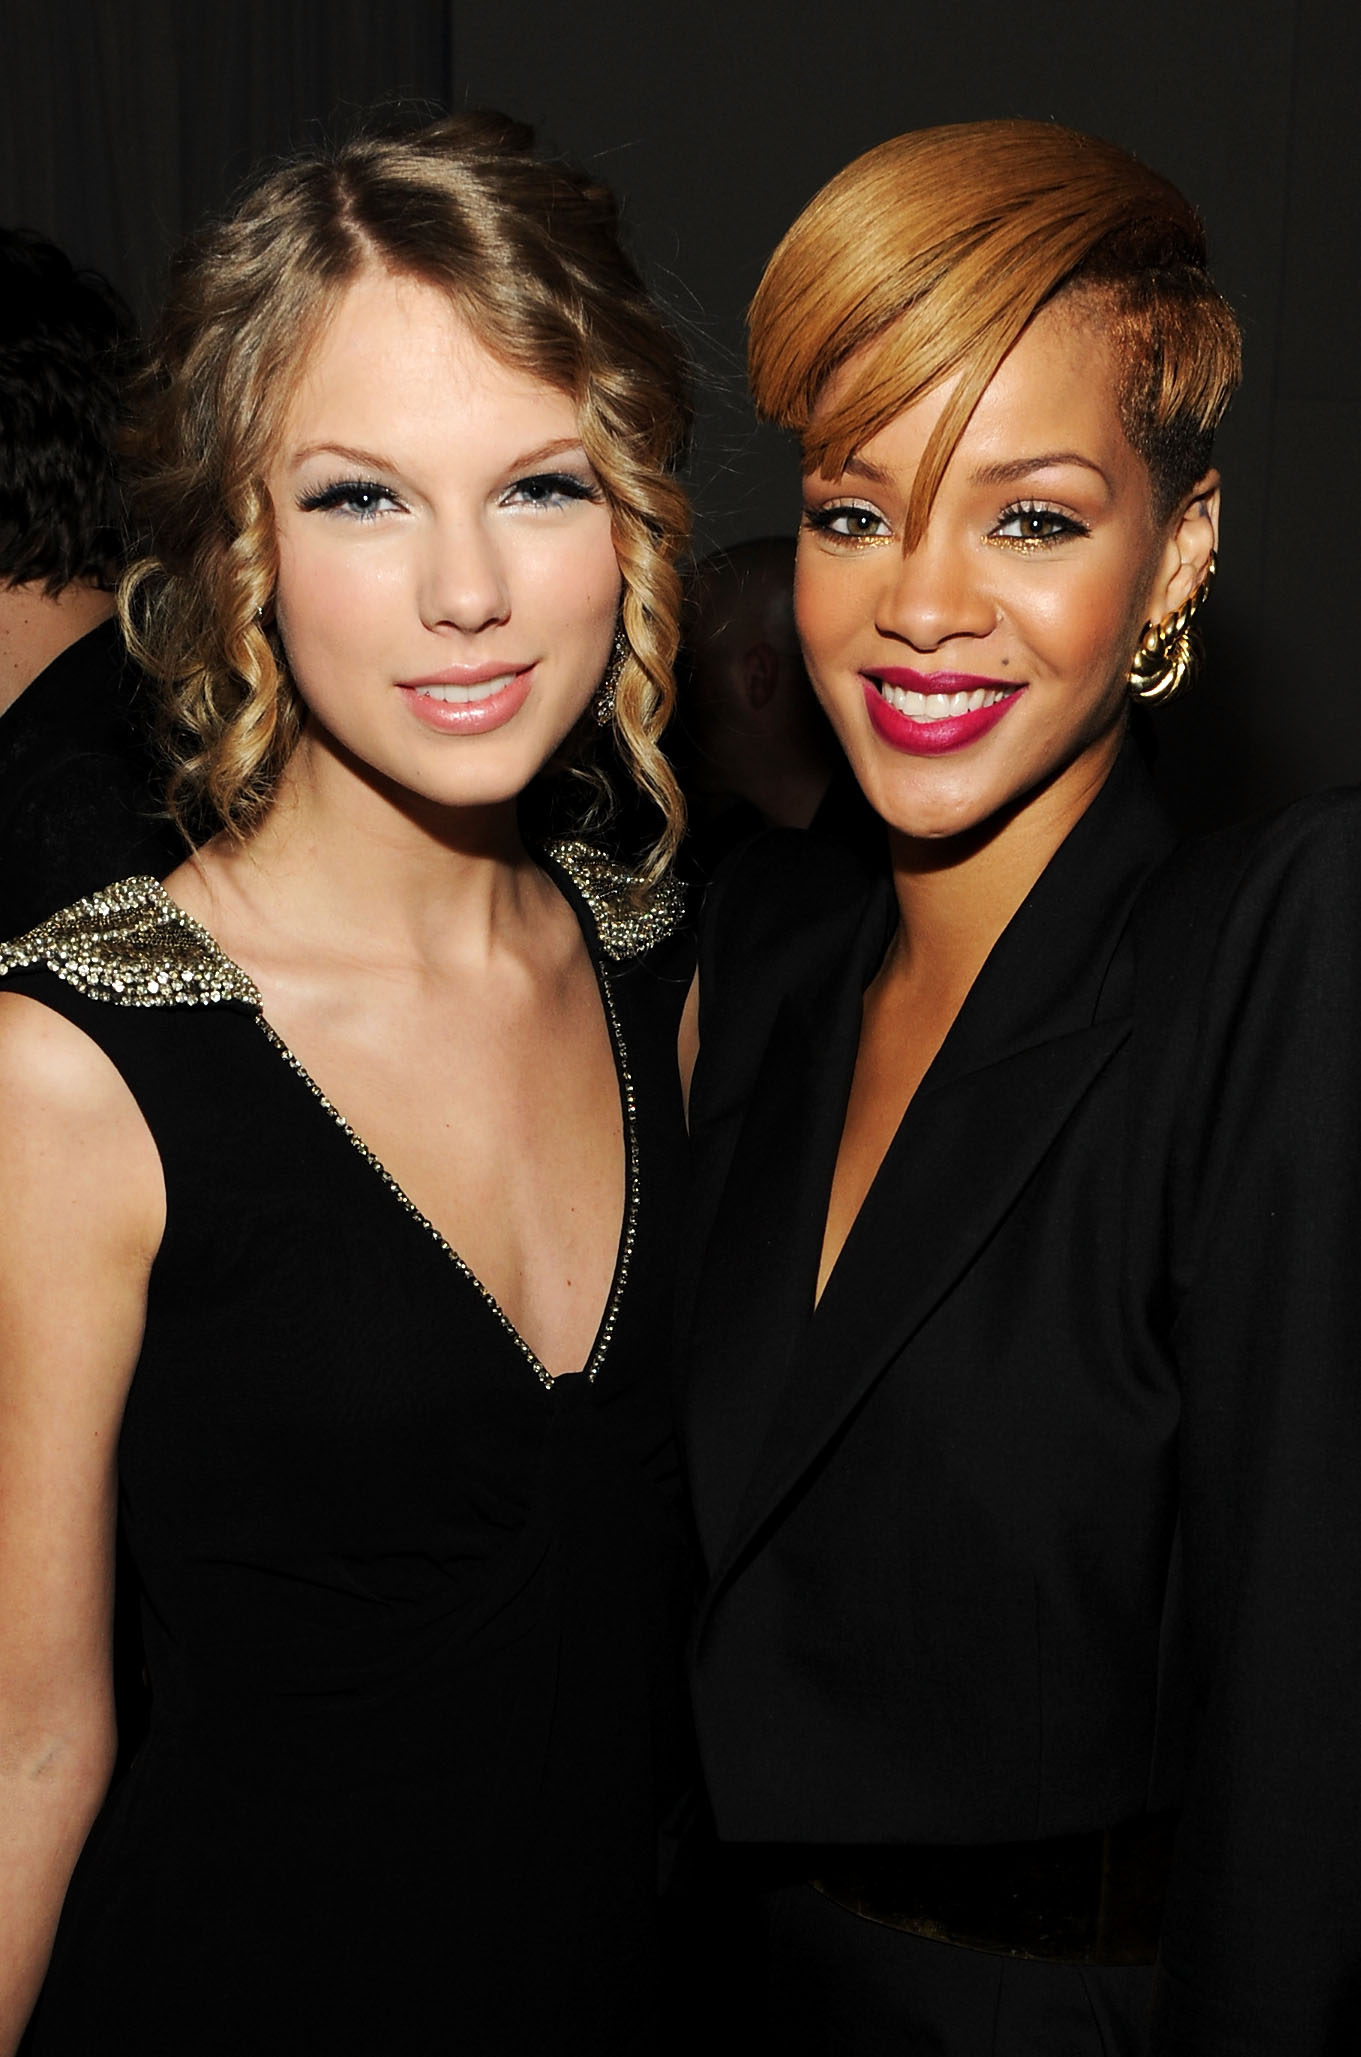 Taylor Swift & Rihanna at the VEVO Launches Premie